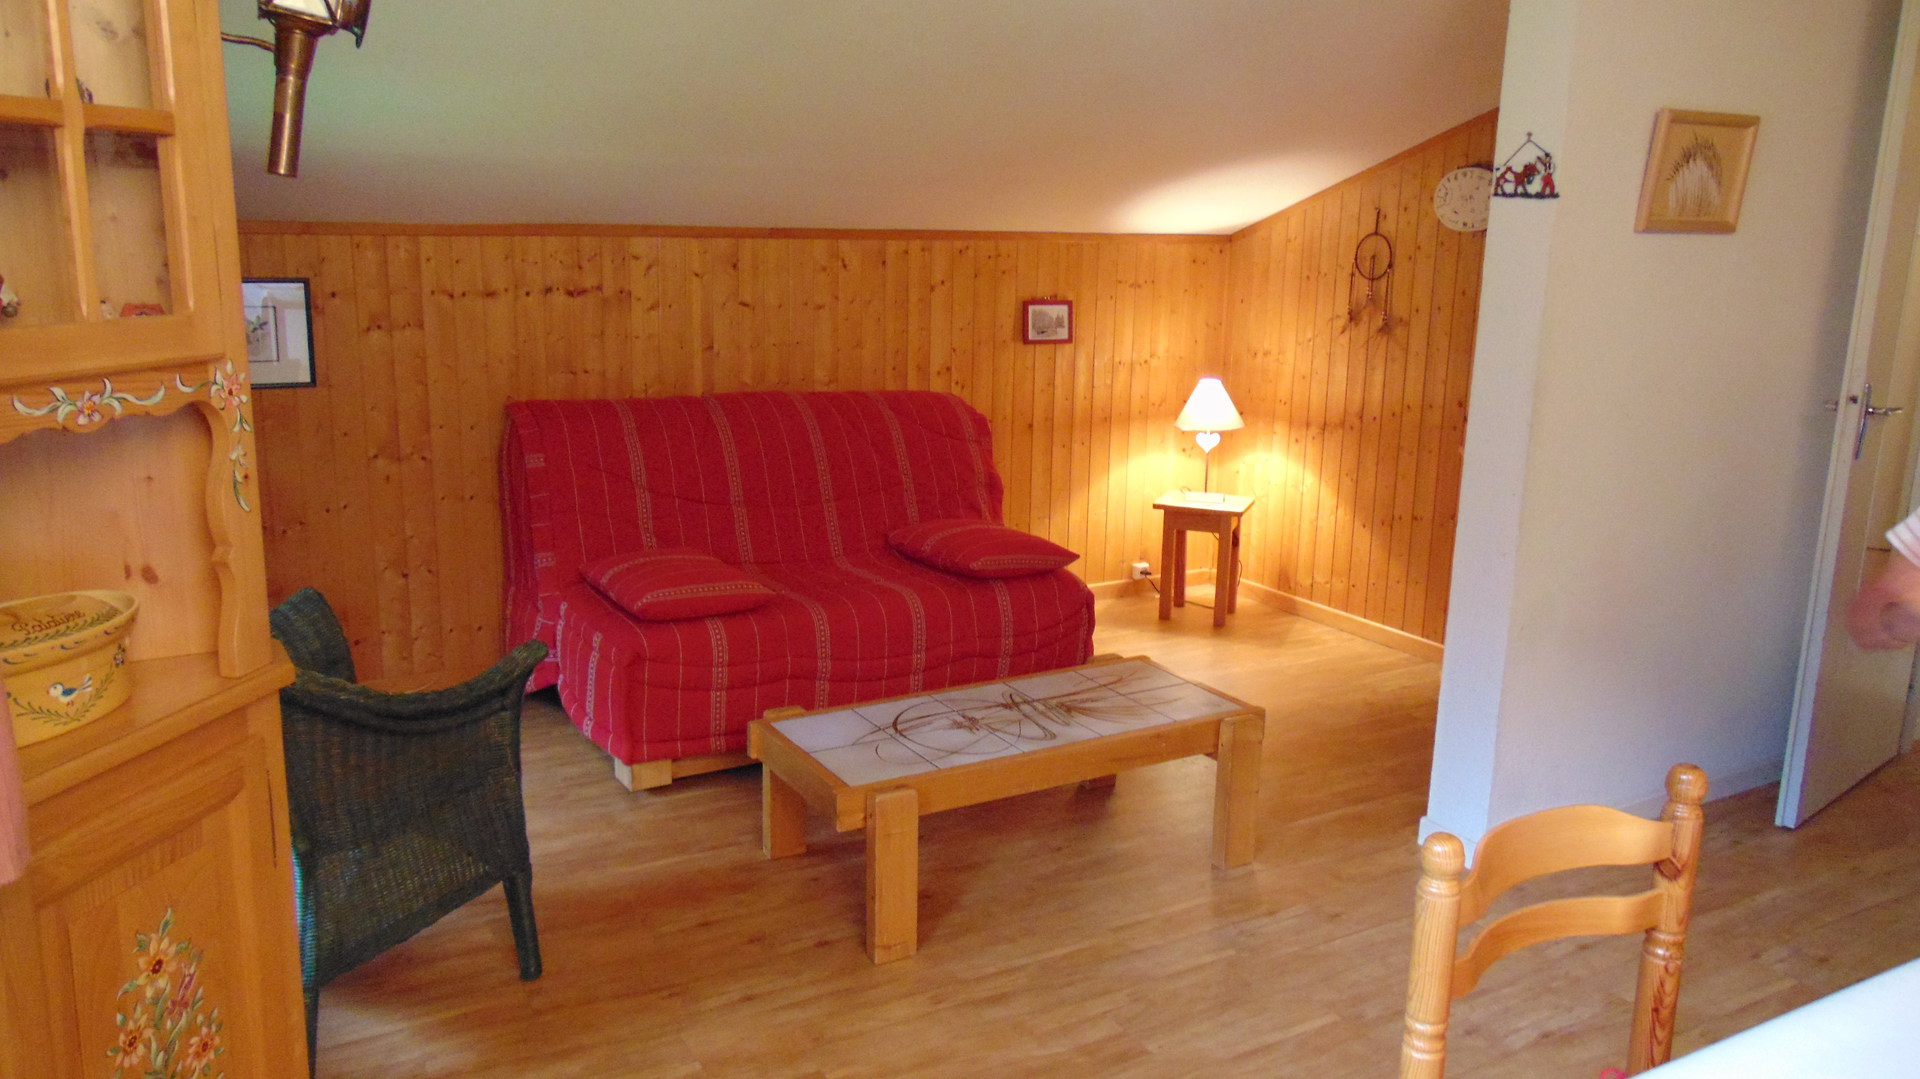 Chamonix Studio Rental Price Comparison For Self Catering Studios # Meuble Tv Hi Fi Style Bord De Mer